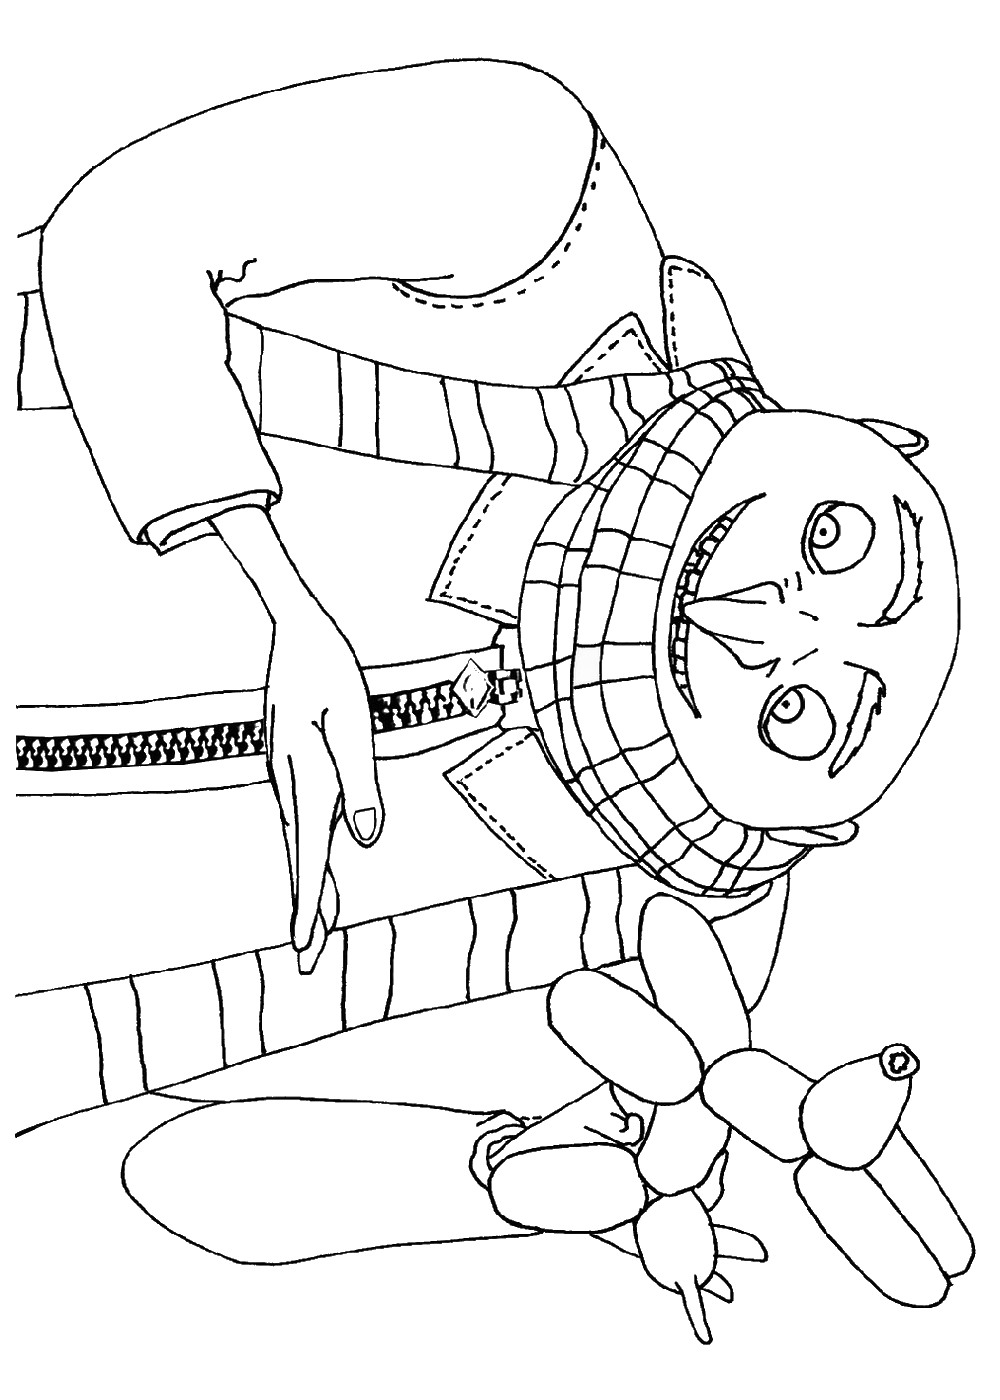 despicable me pictures to print despicable me 3 coloring pages to pictures despicable print me 1 1